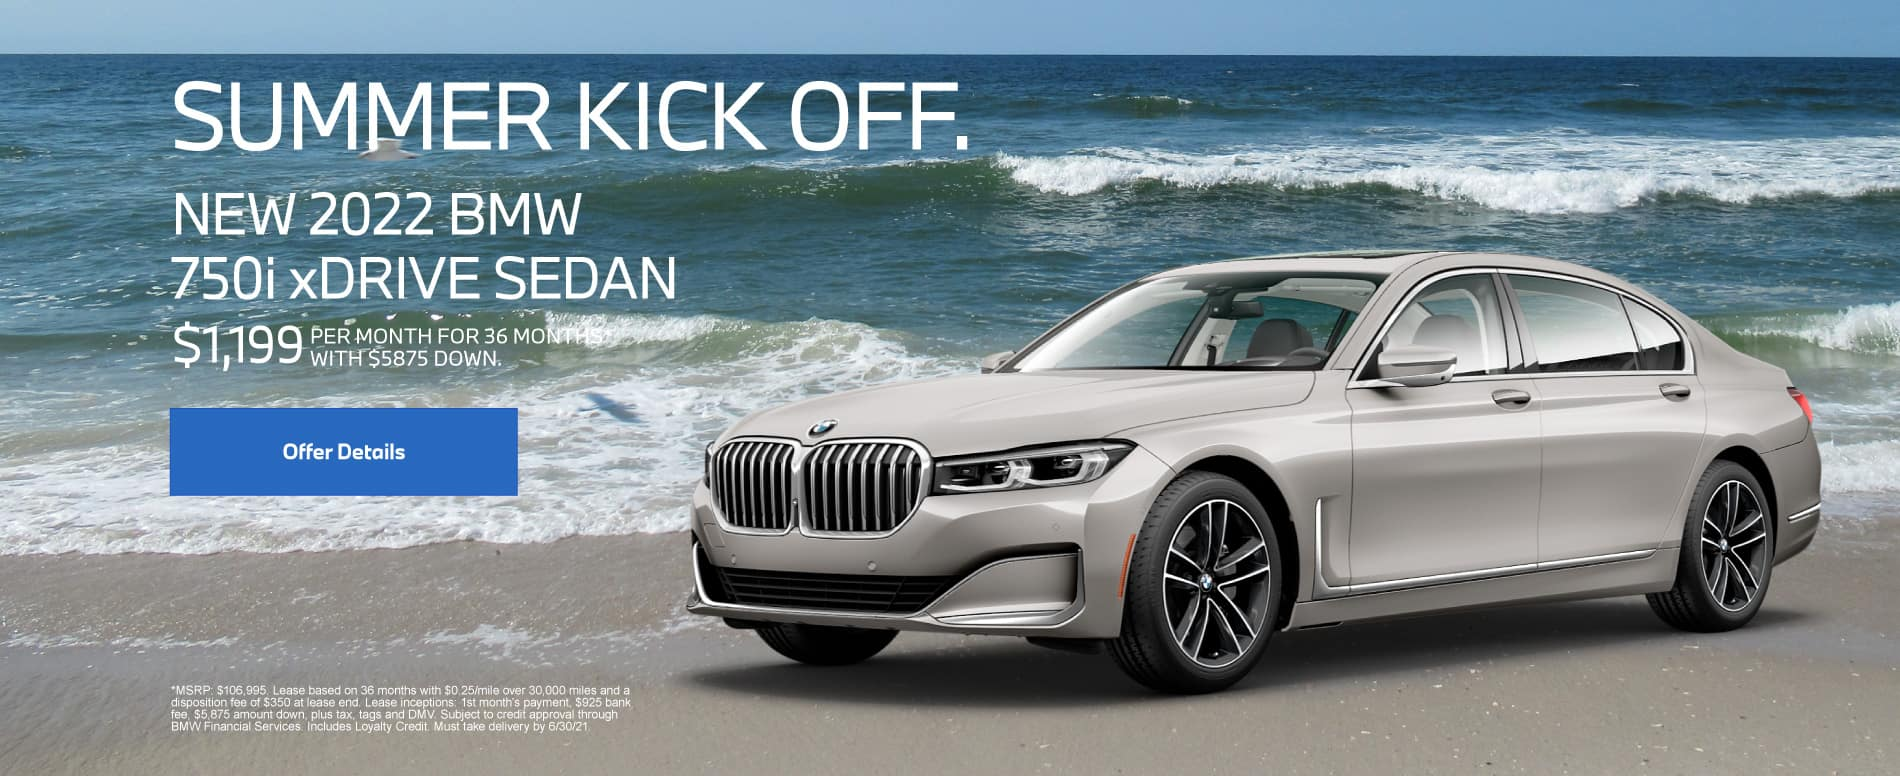 New 2022 BMW 750i xDrive Sedan - $1,199 per month for 36 months With $5,875 down*